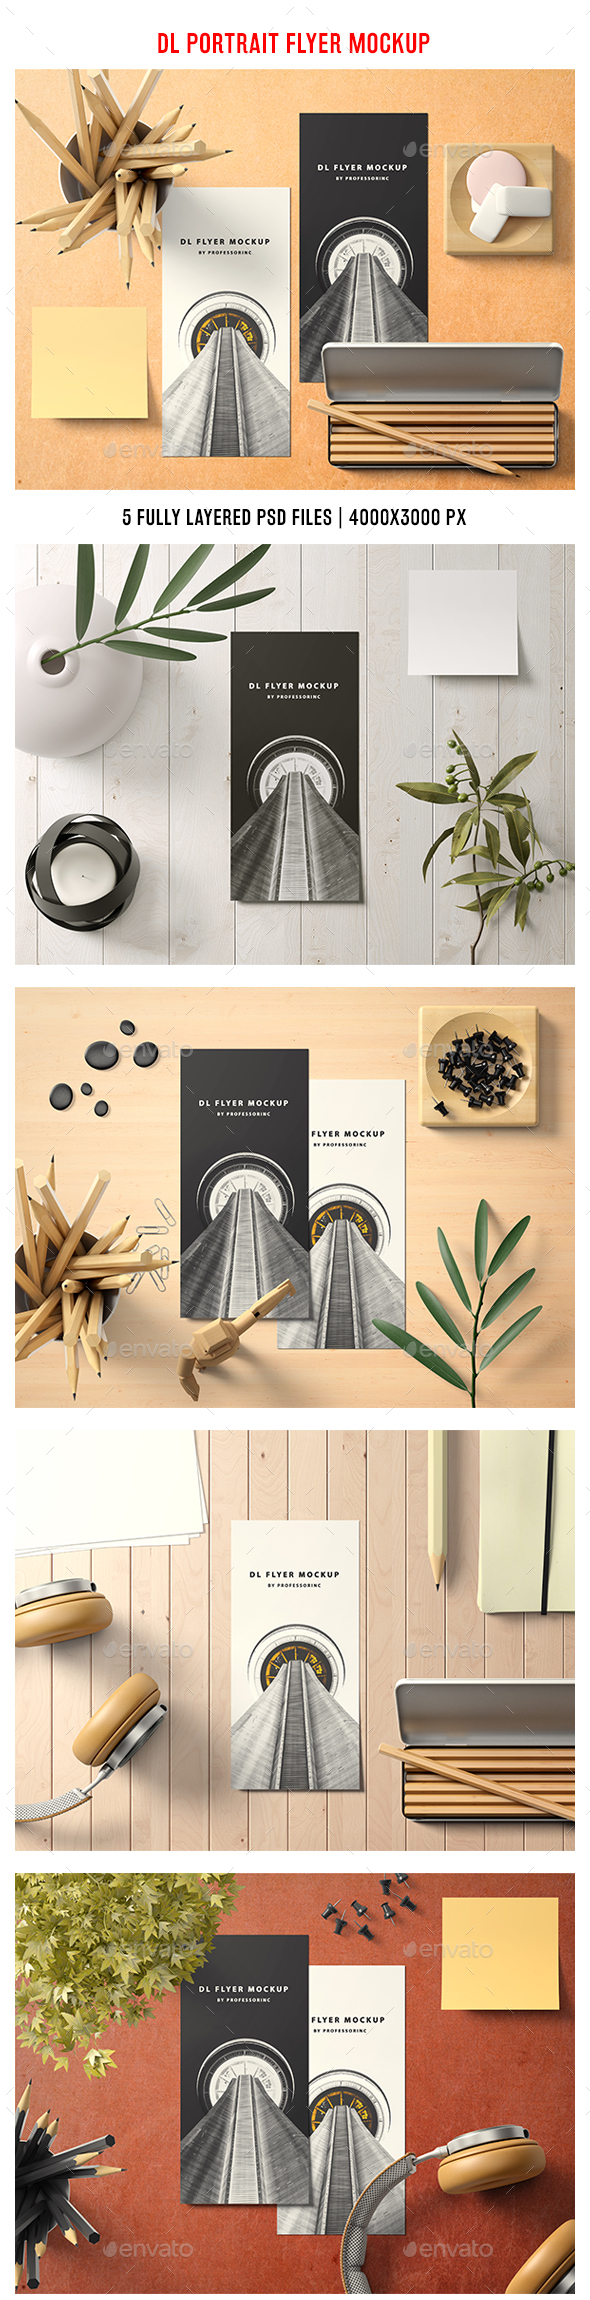 GraphicRiver Portrait DL Flyer Mockup 20941951